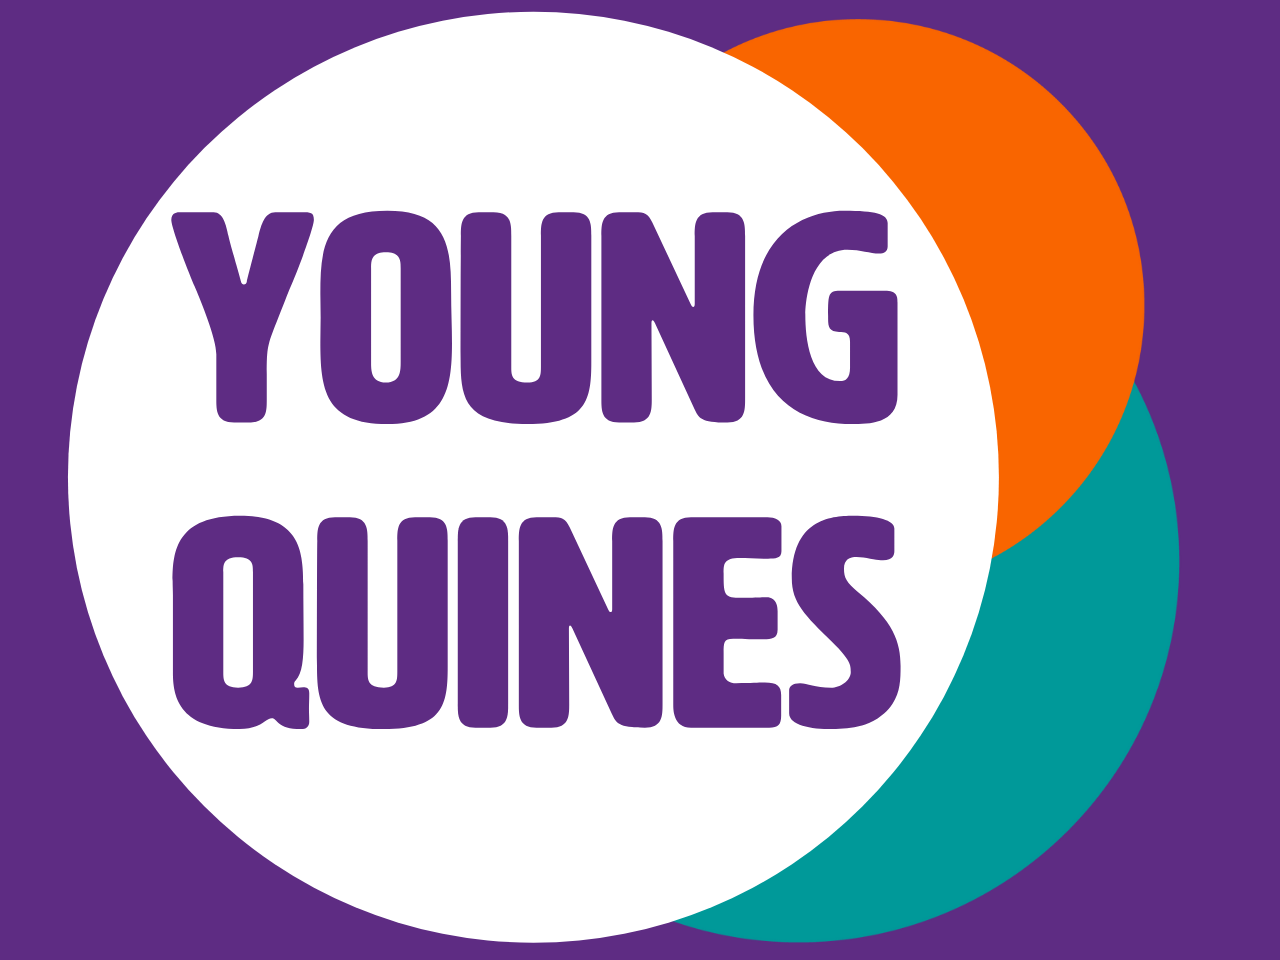 Young Quines wrriten in purple on a white circle, overlapping with an orange circle and a teal circle on a purple background